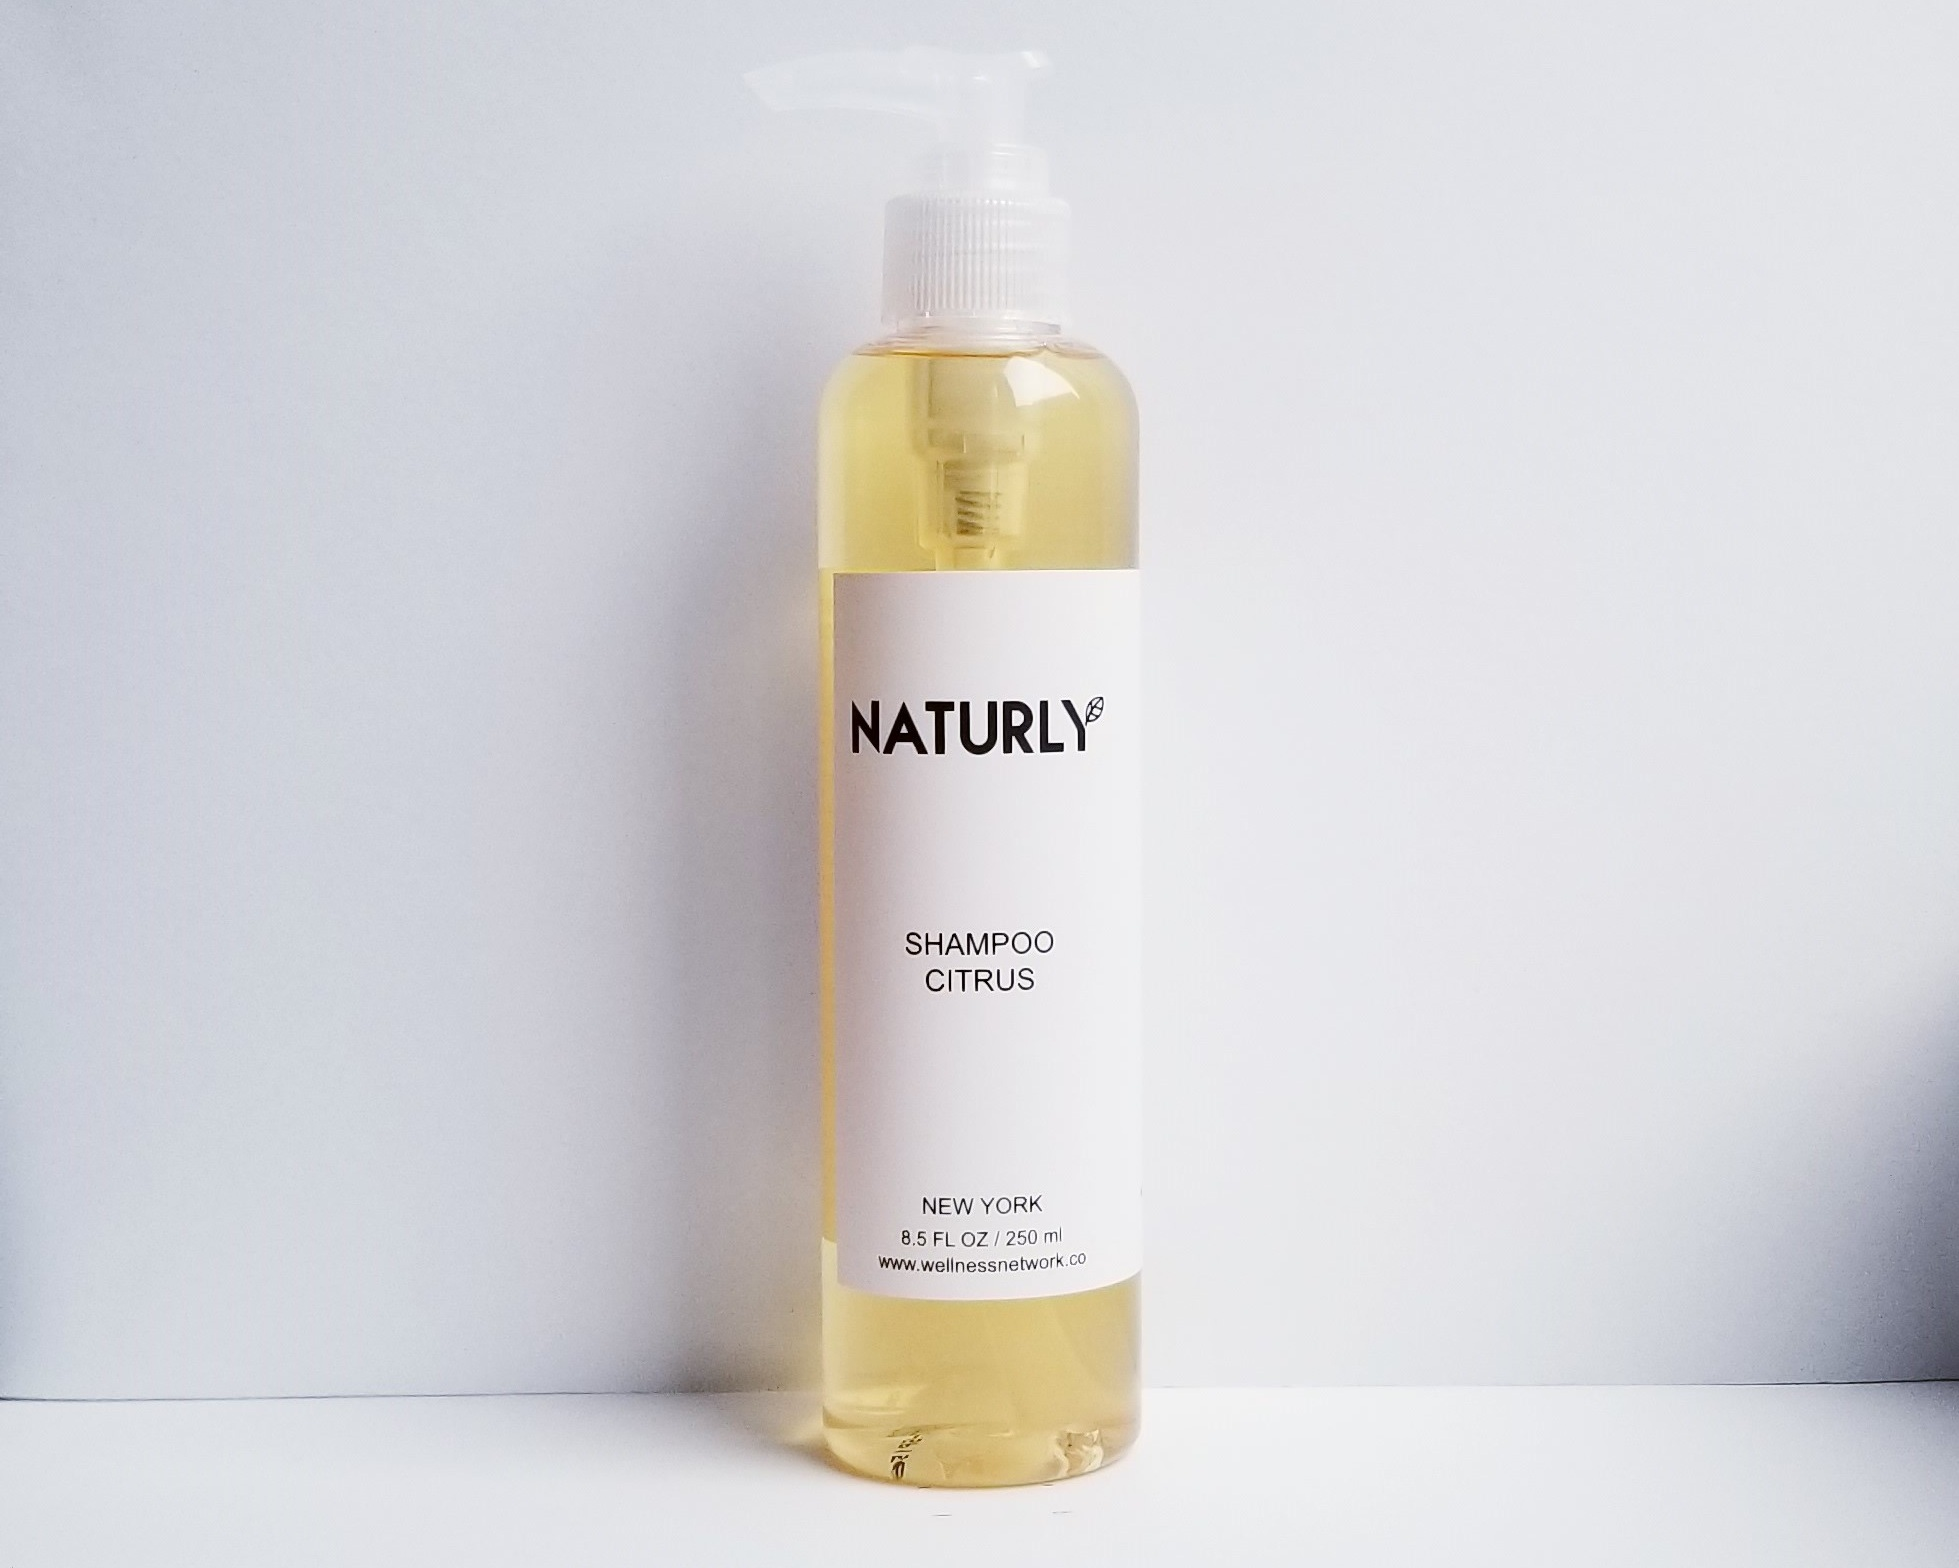 Shampoo with lemon & grapefruit oils, anti-oxidant vitamin E - $28